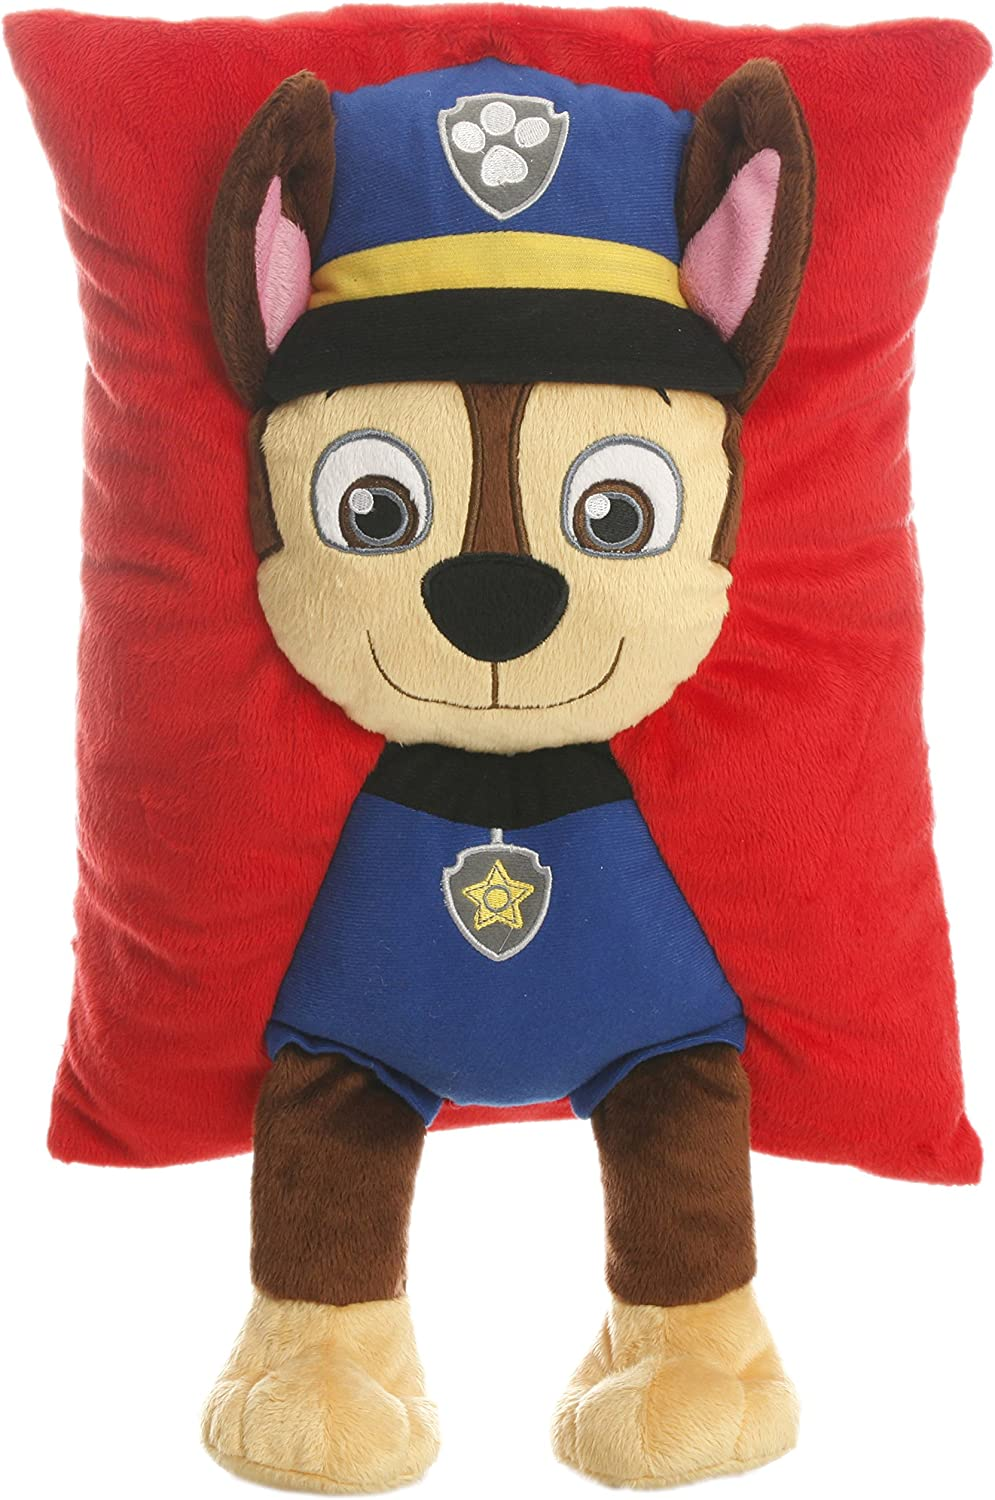 Paw Patrol Chase Decorative Pillow, Navy Red